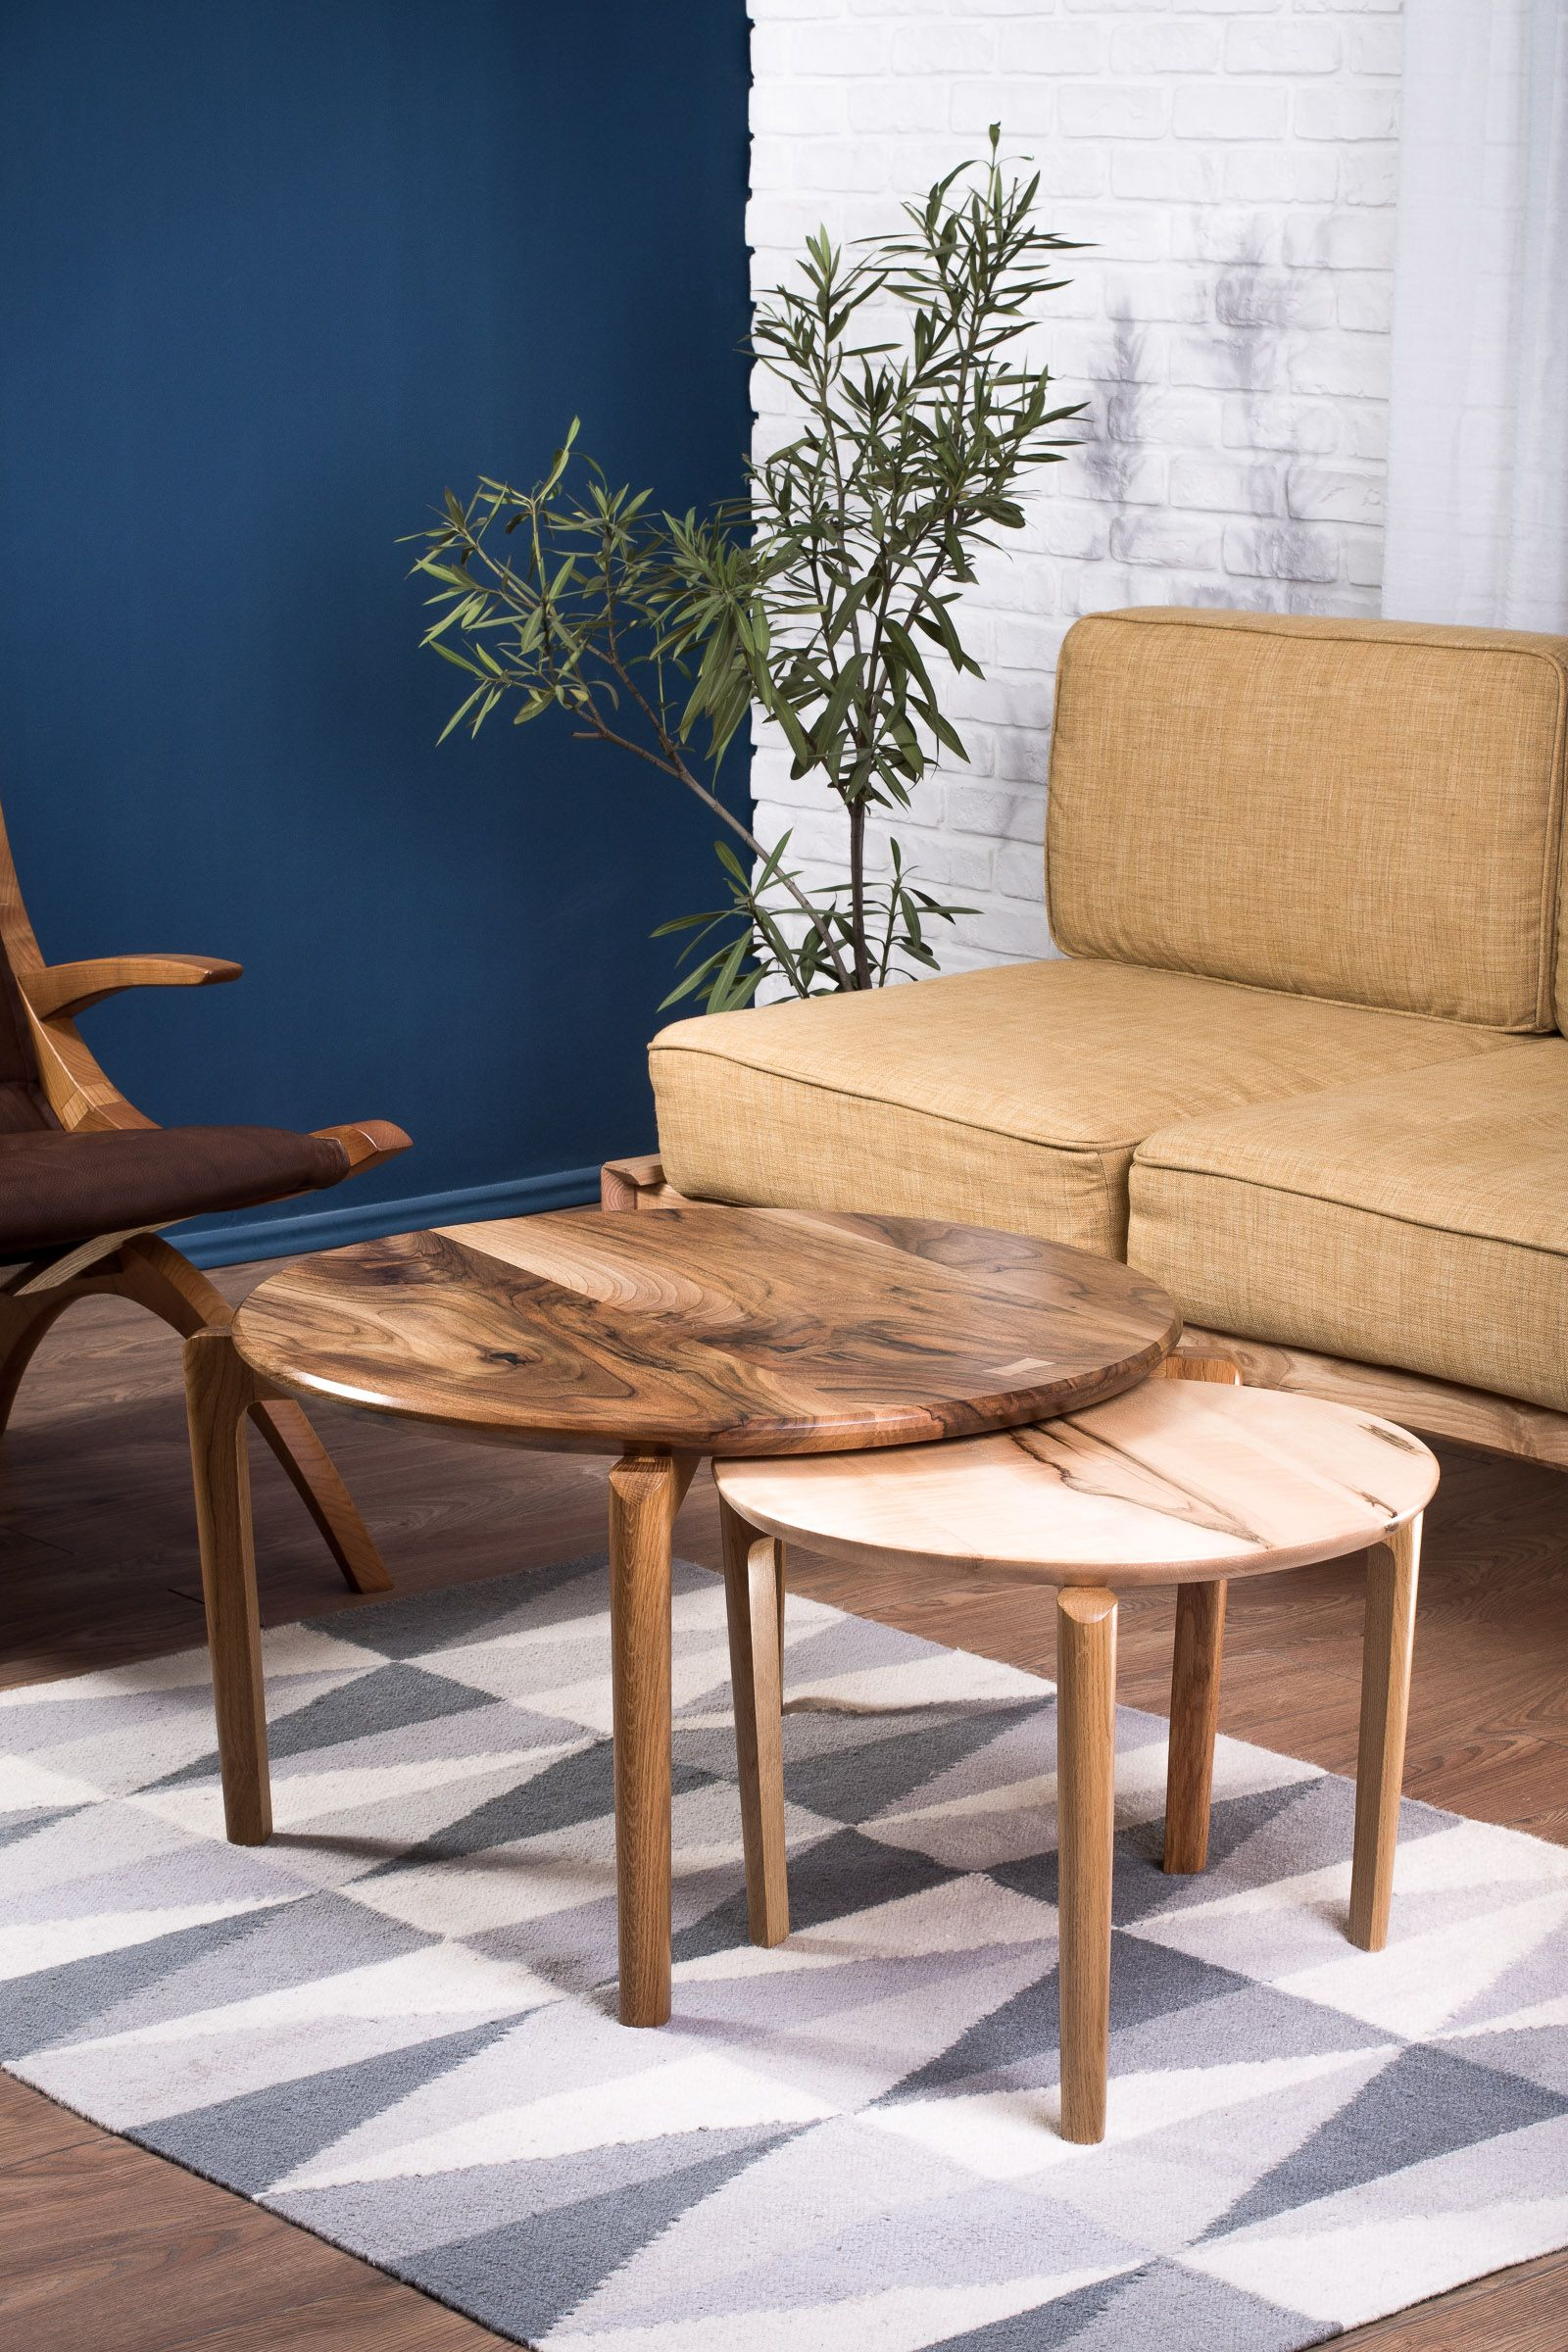 Jupiter nested tables round coffee table decor